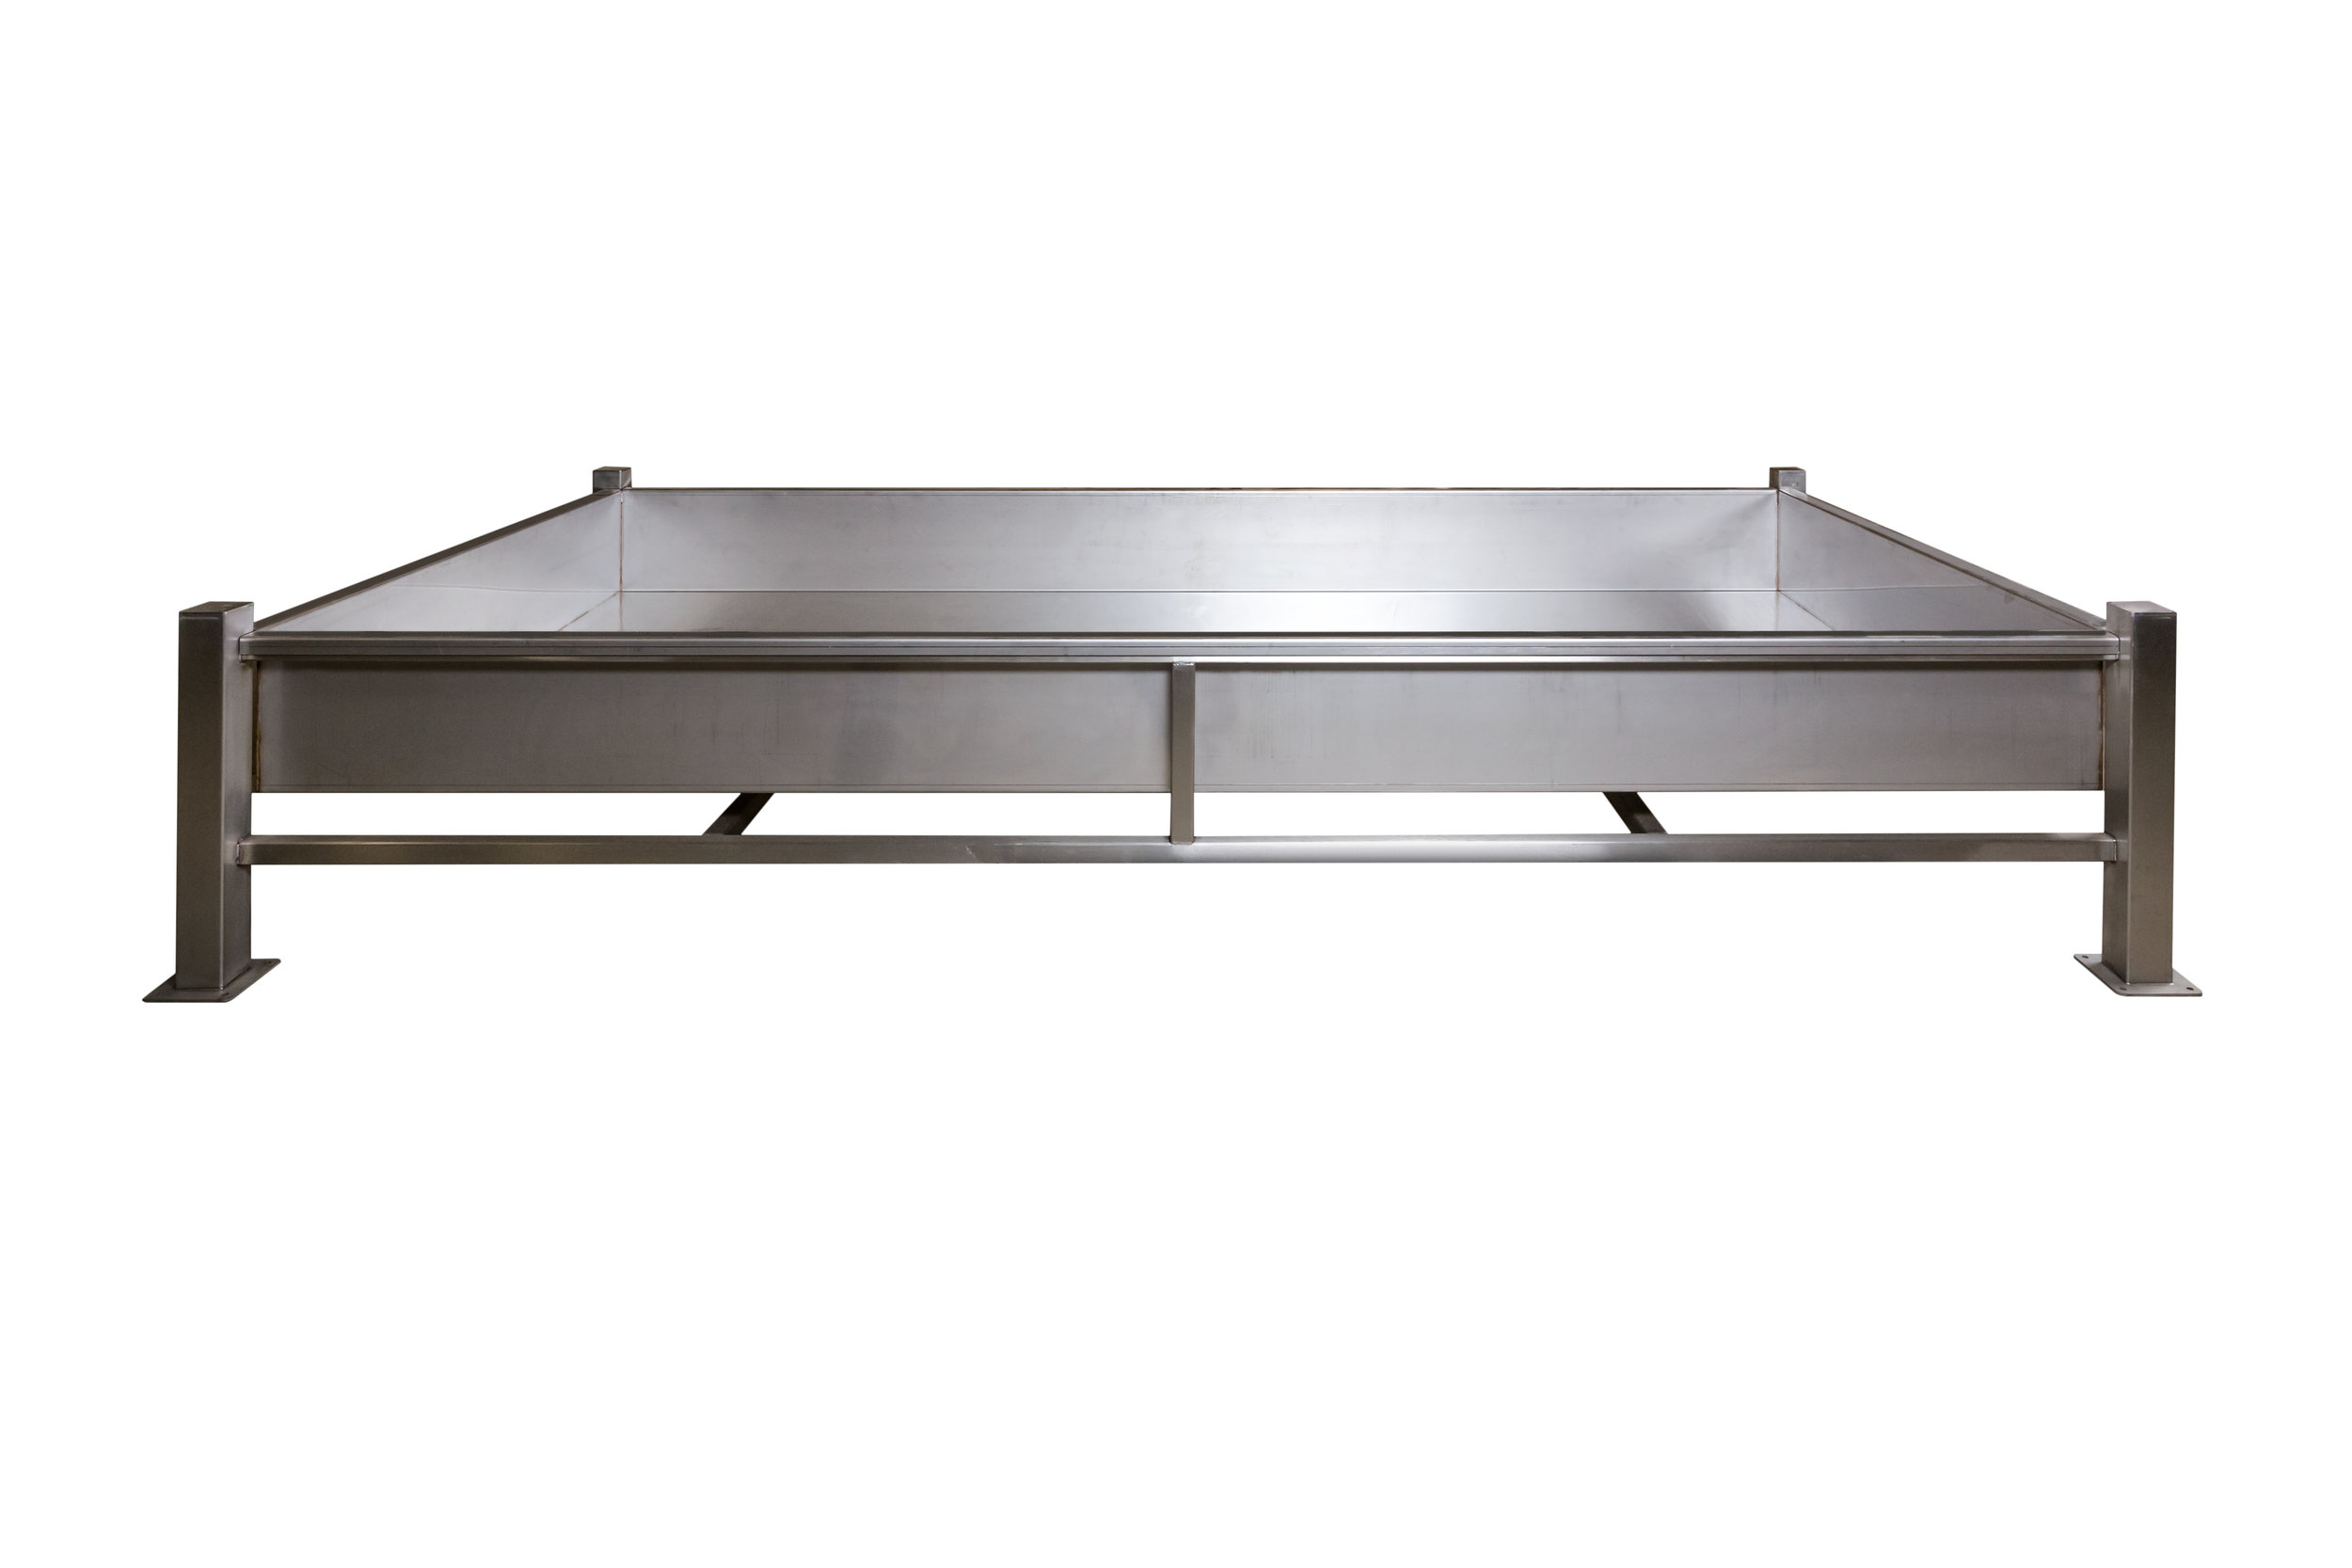 Foeder-Crafters-Coolship-150804-053_CLIP.jpg